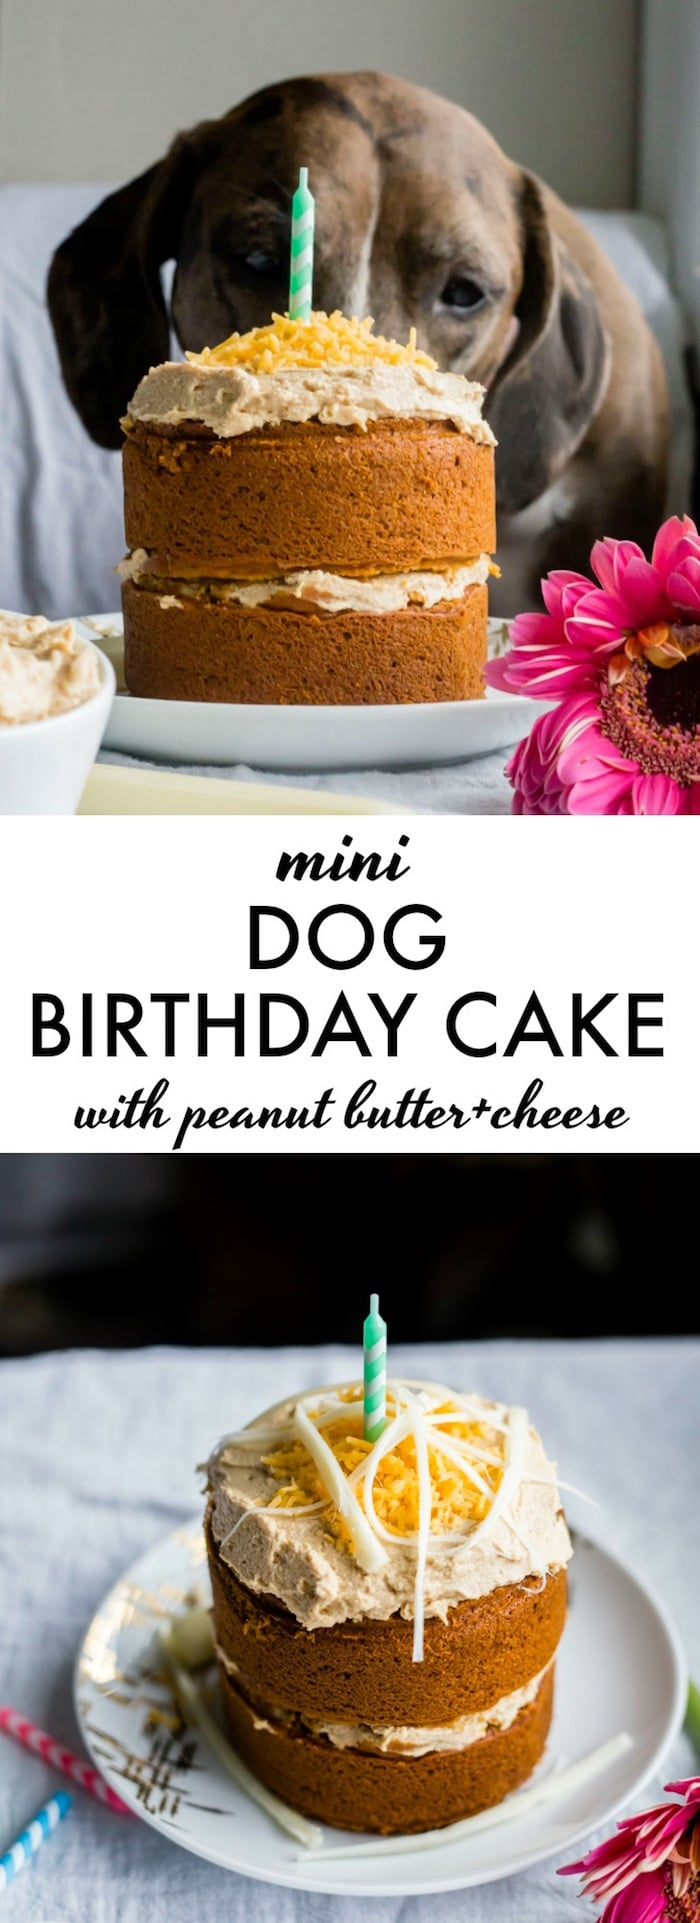 Mini Dog Birthday Cake